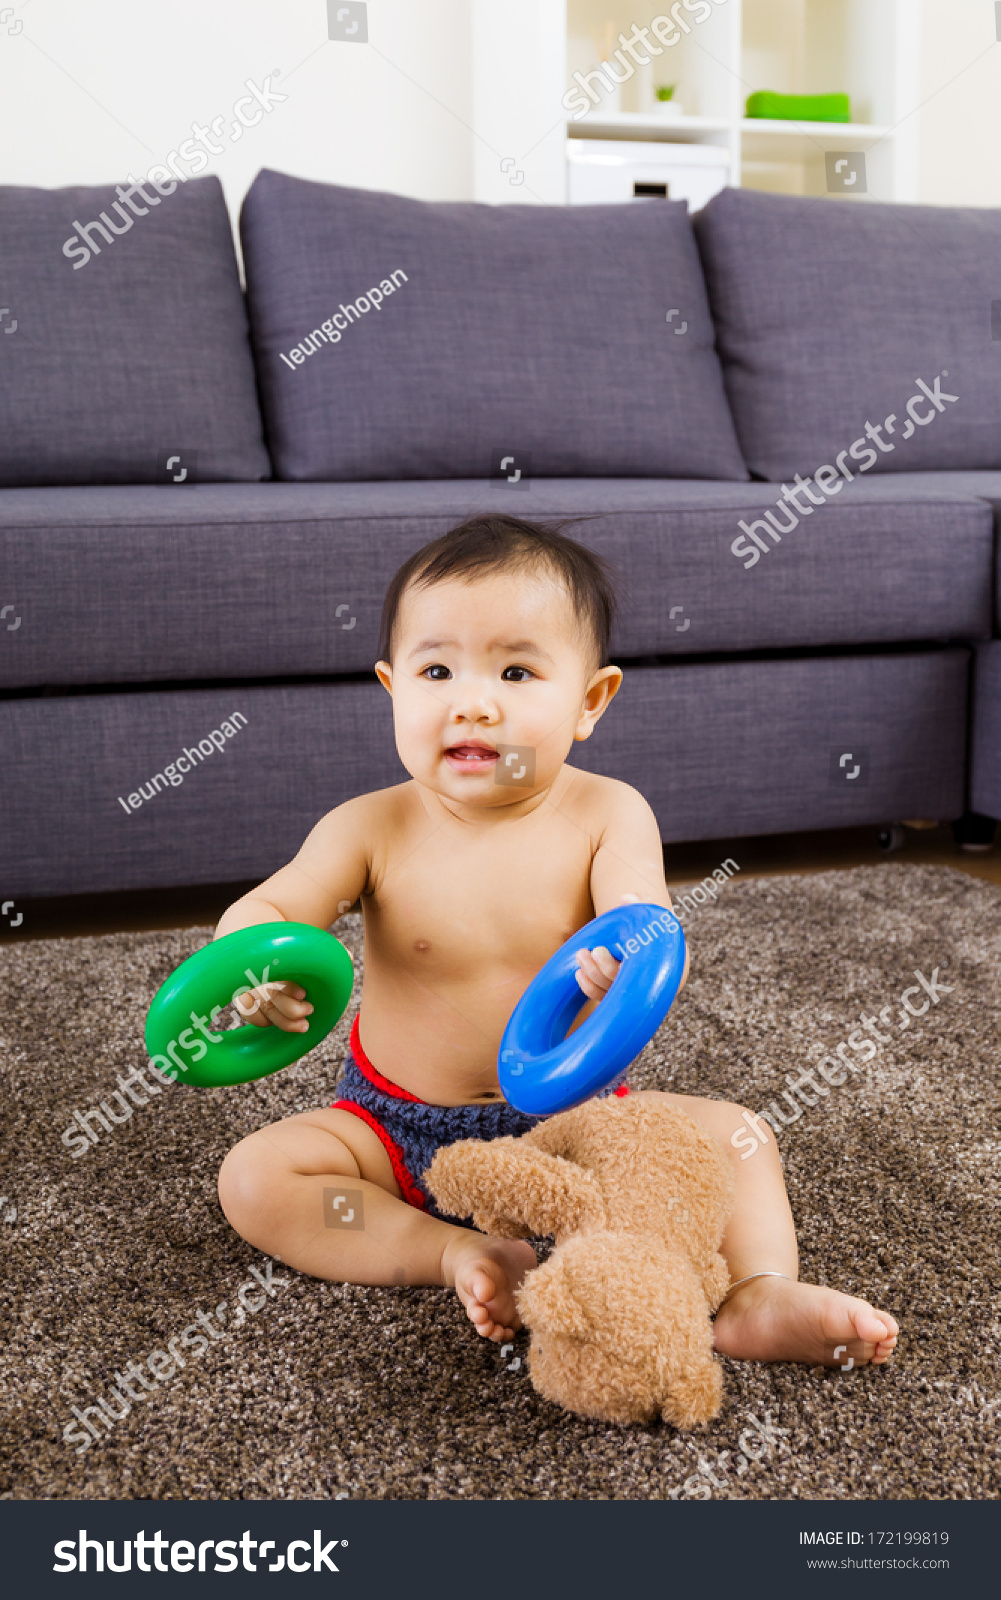 Baby Seating On Carpet Play Doll Stock Photo 172199819 - Shutterstock